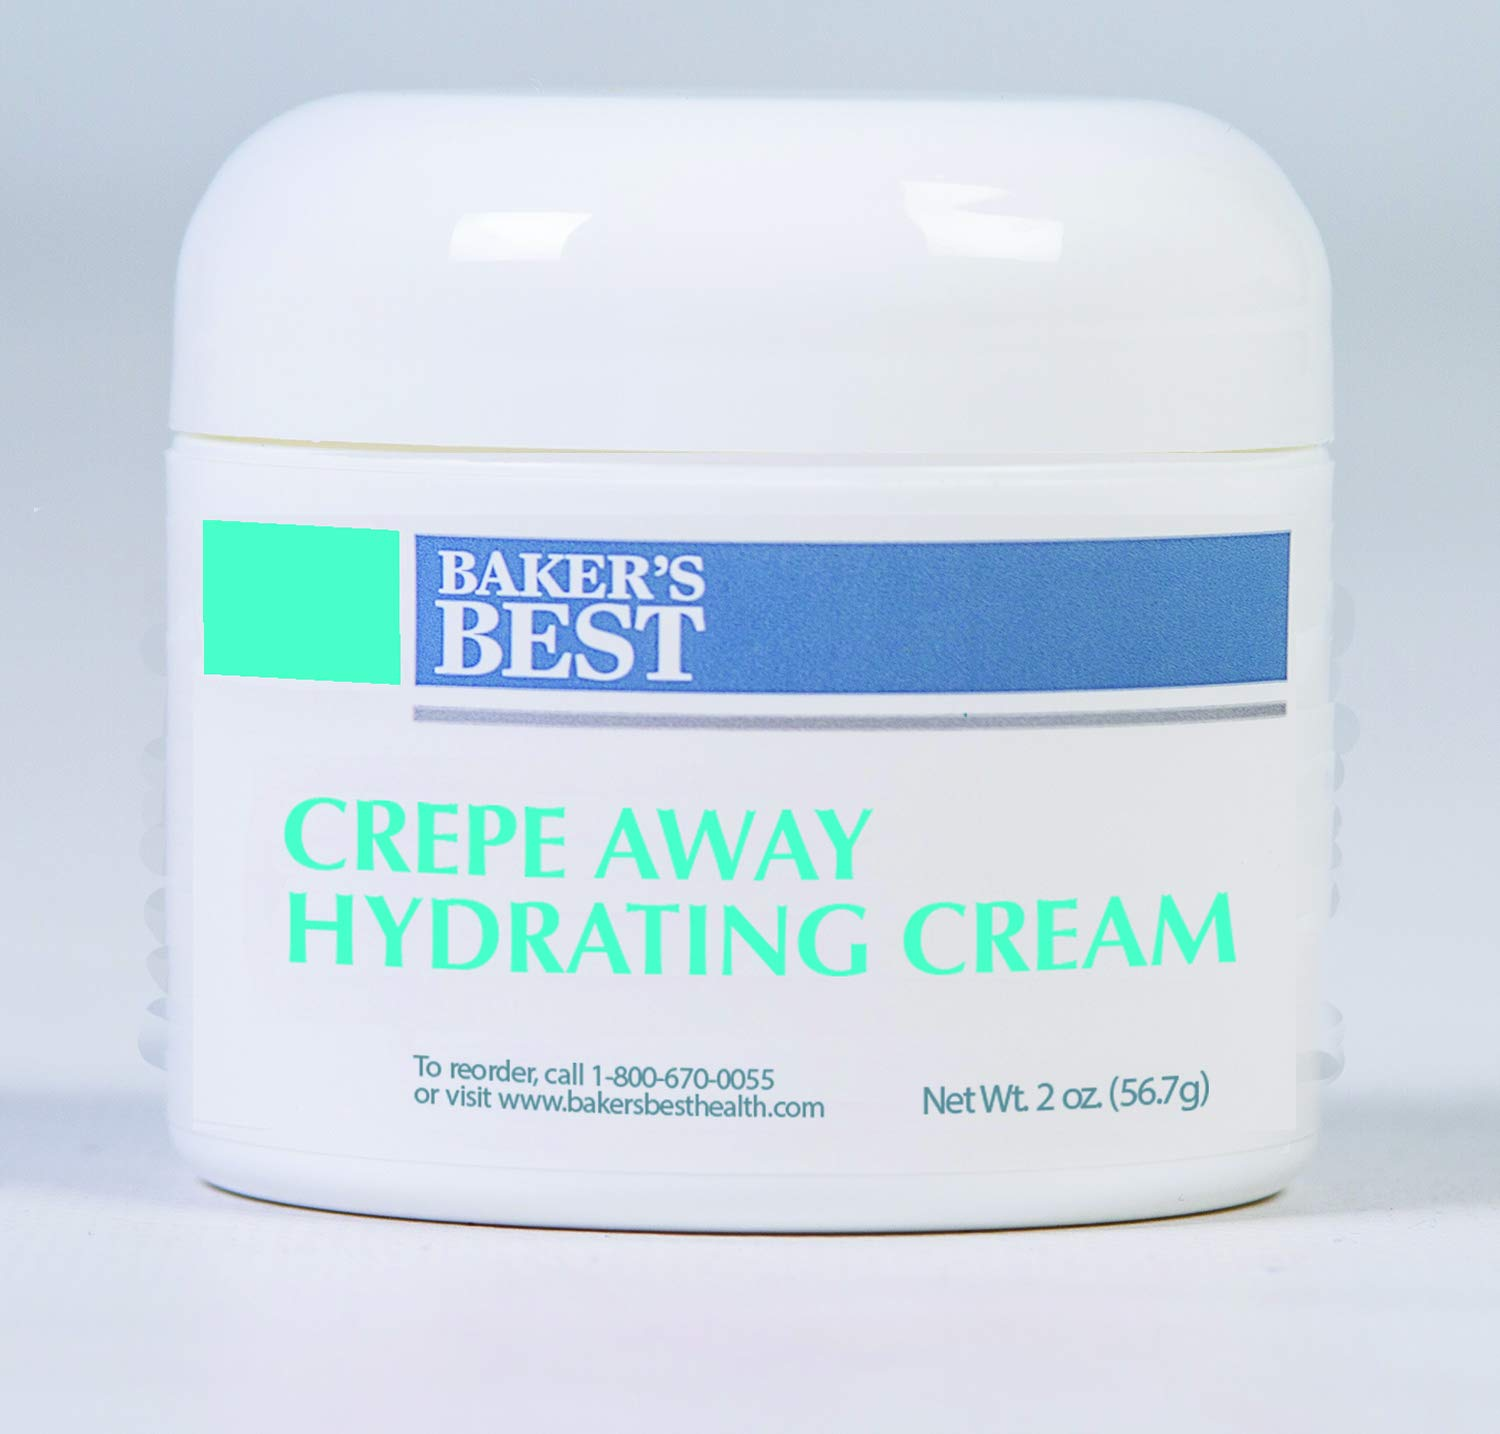 Baker's Best Crepe Away Cream – Smooths, firms, tightens and tones saggy, crepey, crinkly skin, anti-aging, boosts collagen for neck, chest, arms, legs, thighs, and buttocks – 2oz luxury cream